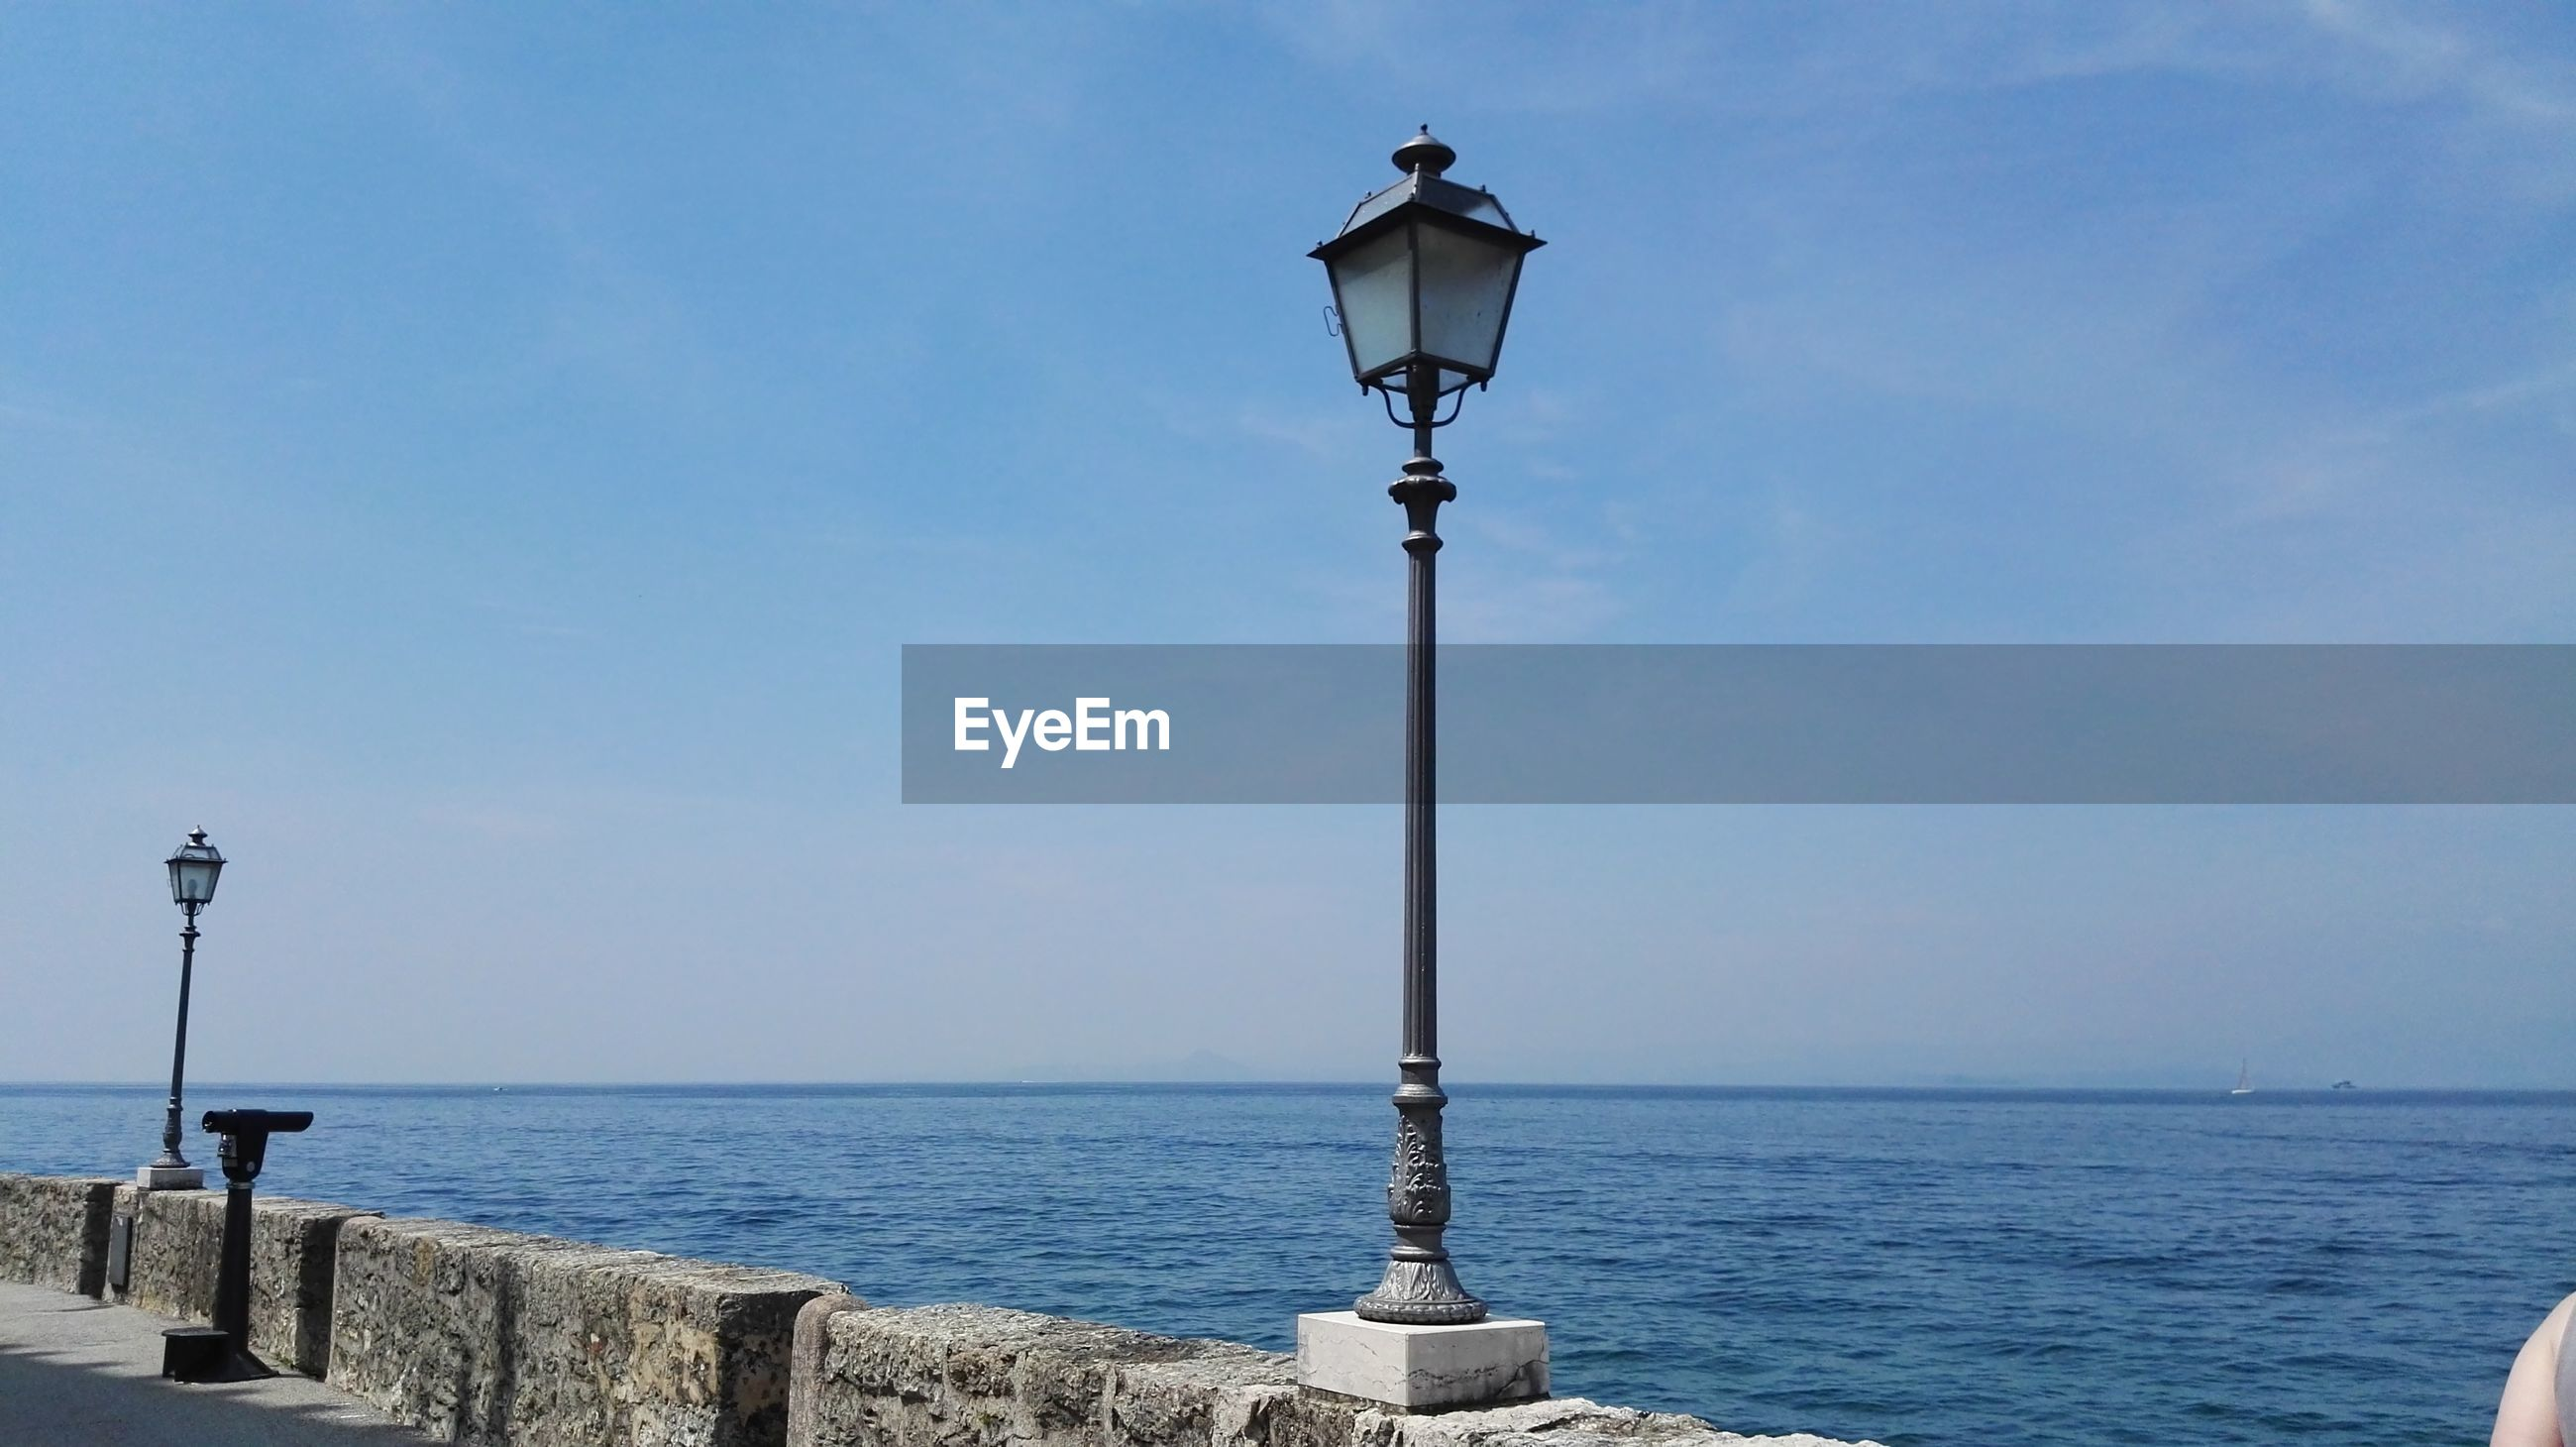 sea, street light, lighting equipment, water, horizon over water, scenics, nature, tranquility, beauty in nature, gas light, tranquil scene, outdoors, day, sky, no people, blue, clear sky, perching